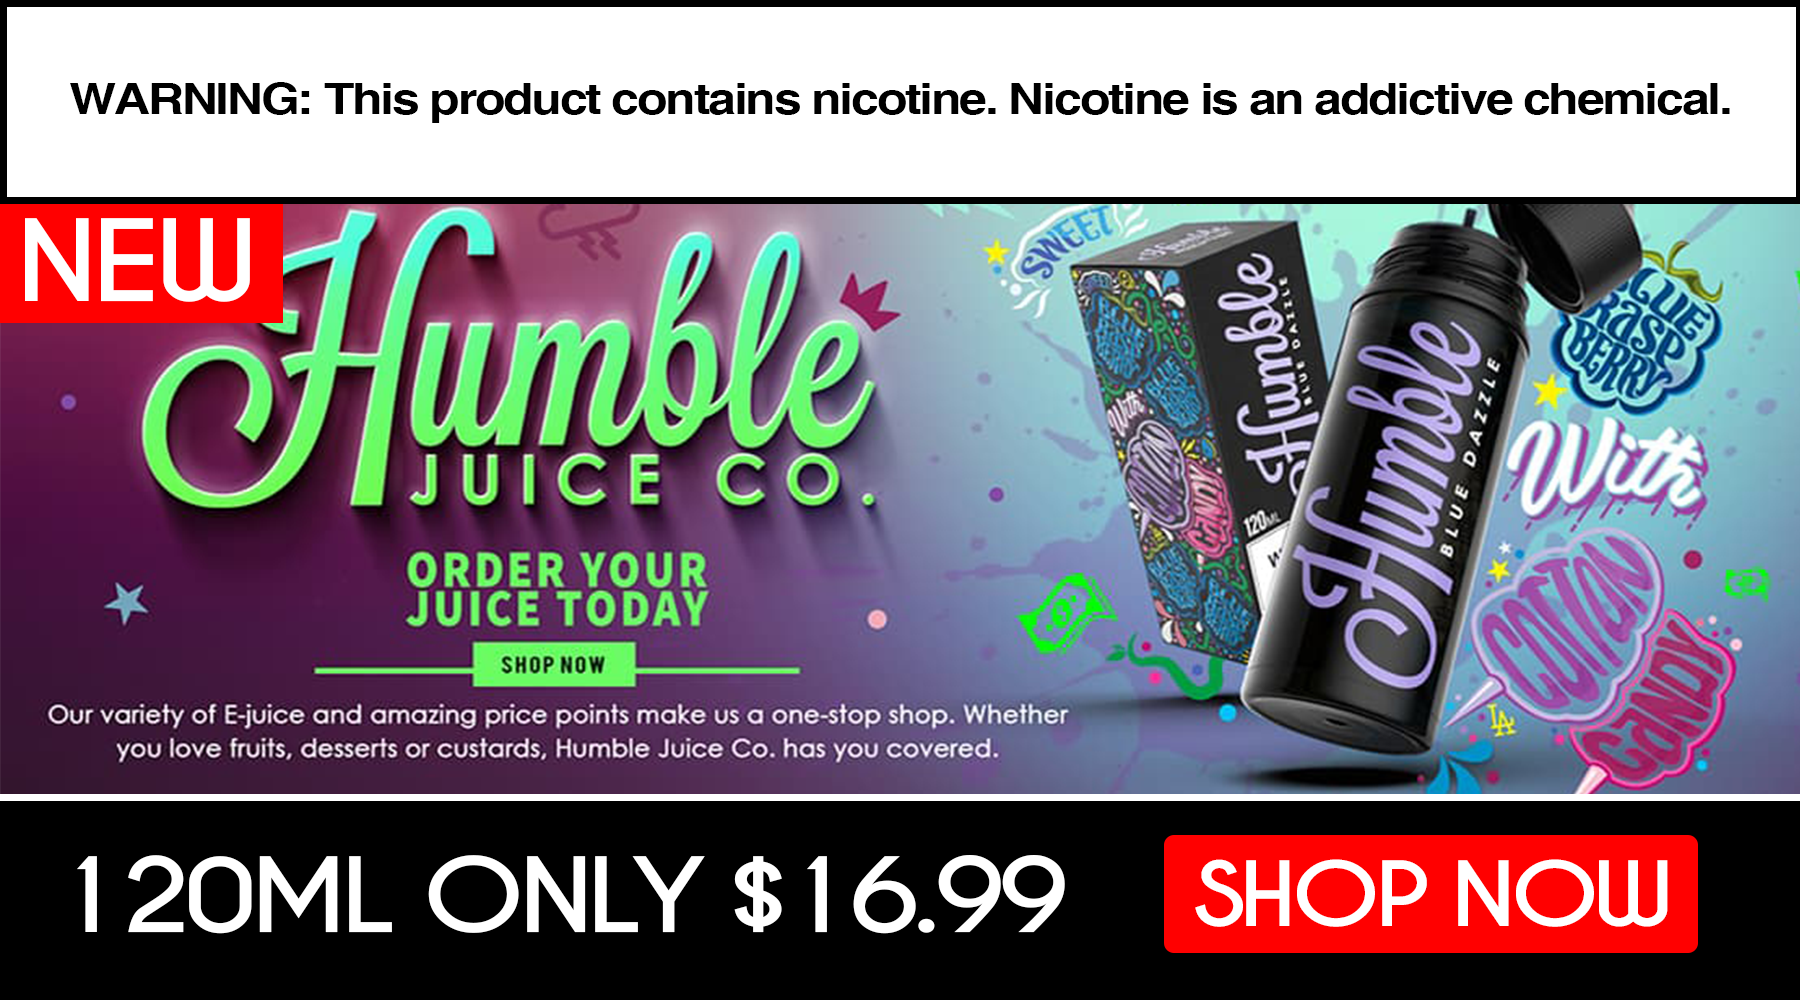 Humble Juice Co Eliquid Sale